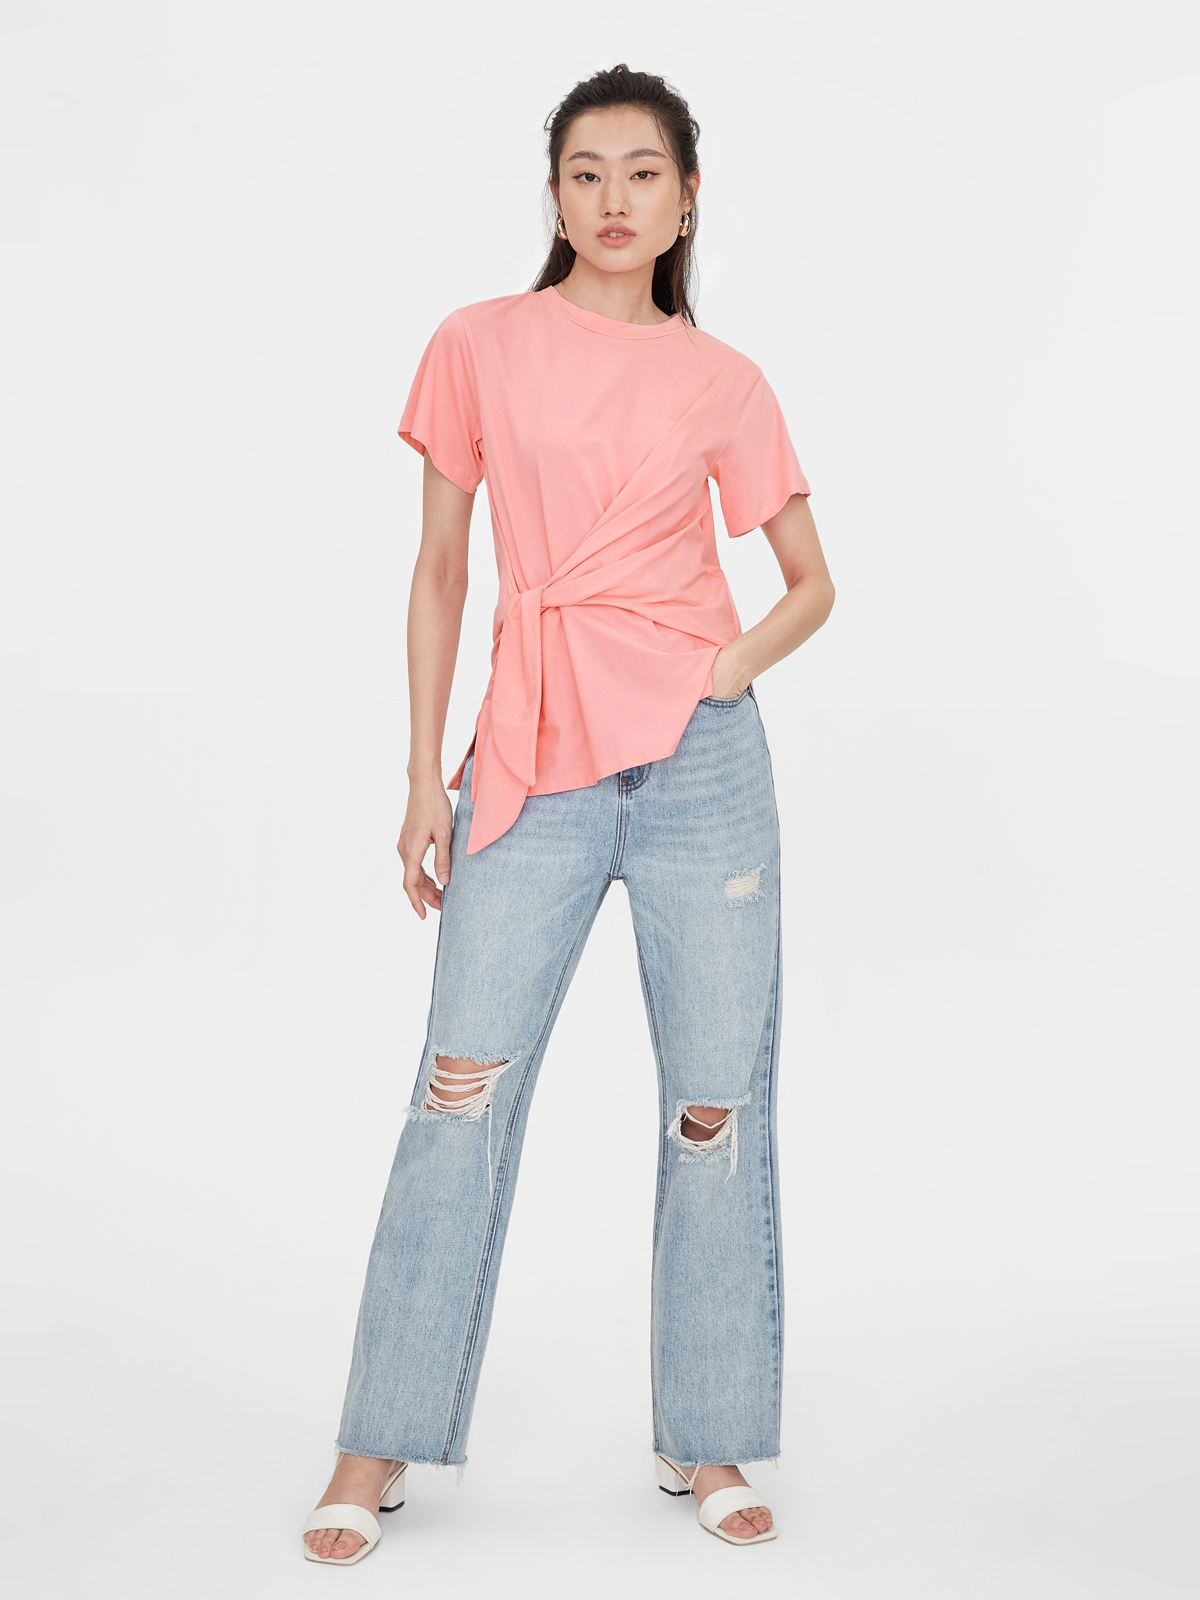 Oversized Side Knot Tee Pink